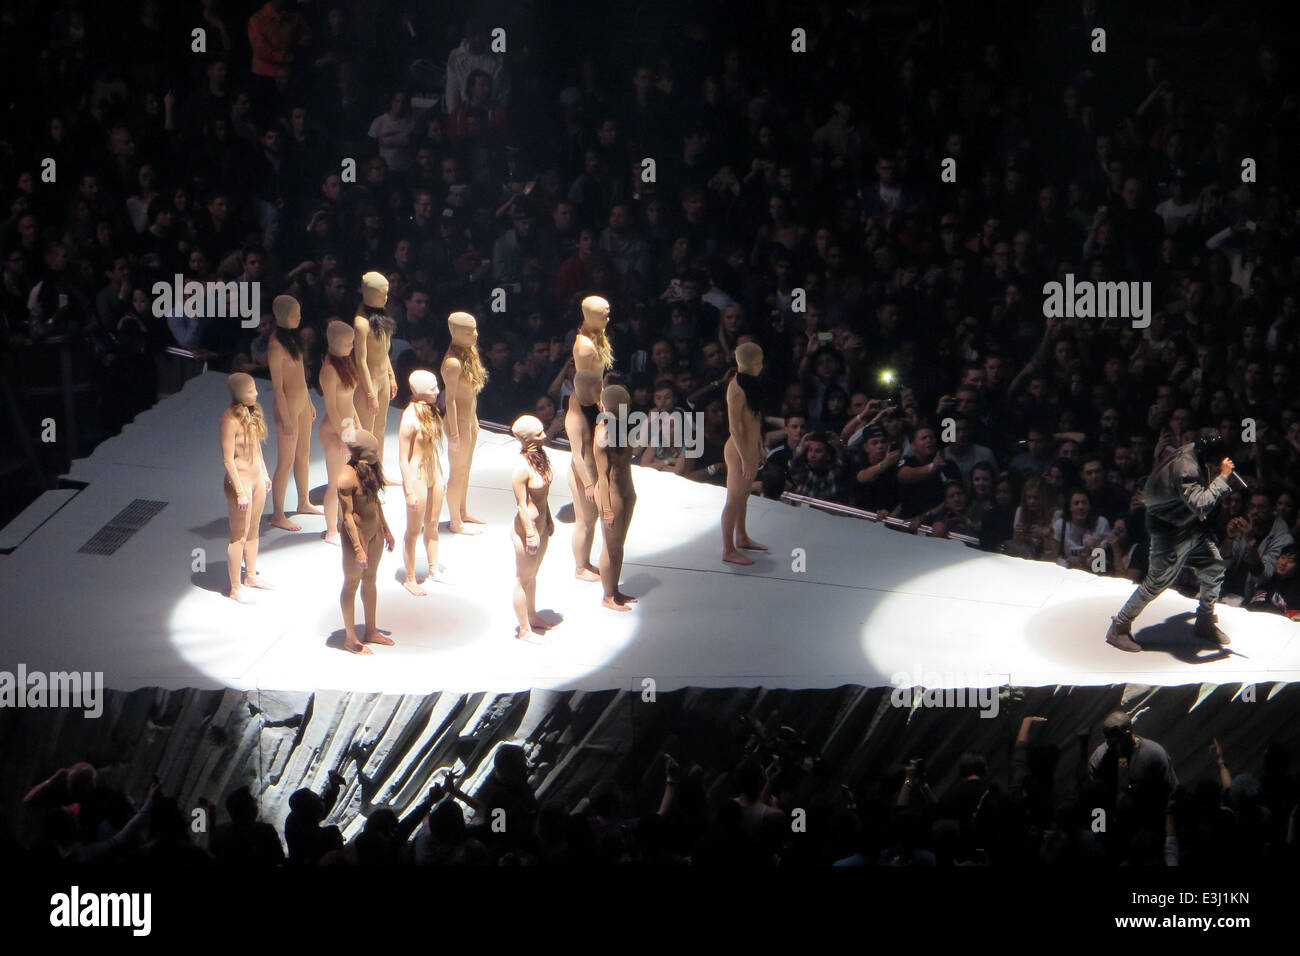 Perfect Kanye West Performs To A Sold Out Crowd At Madison Square Garden As Part Of  His U0027Yeezusu0027 Tour. The Eccentric Rapper Performed The Entire Concert  Wearing A ... Great Pictures